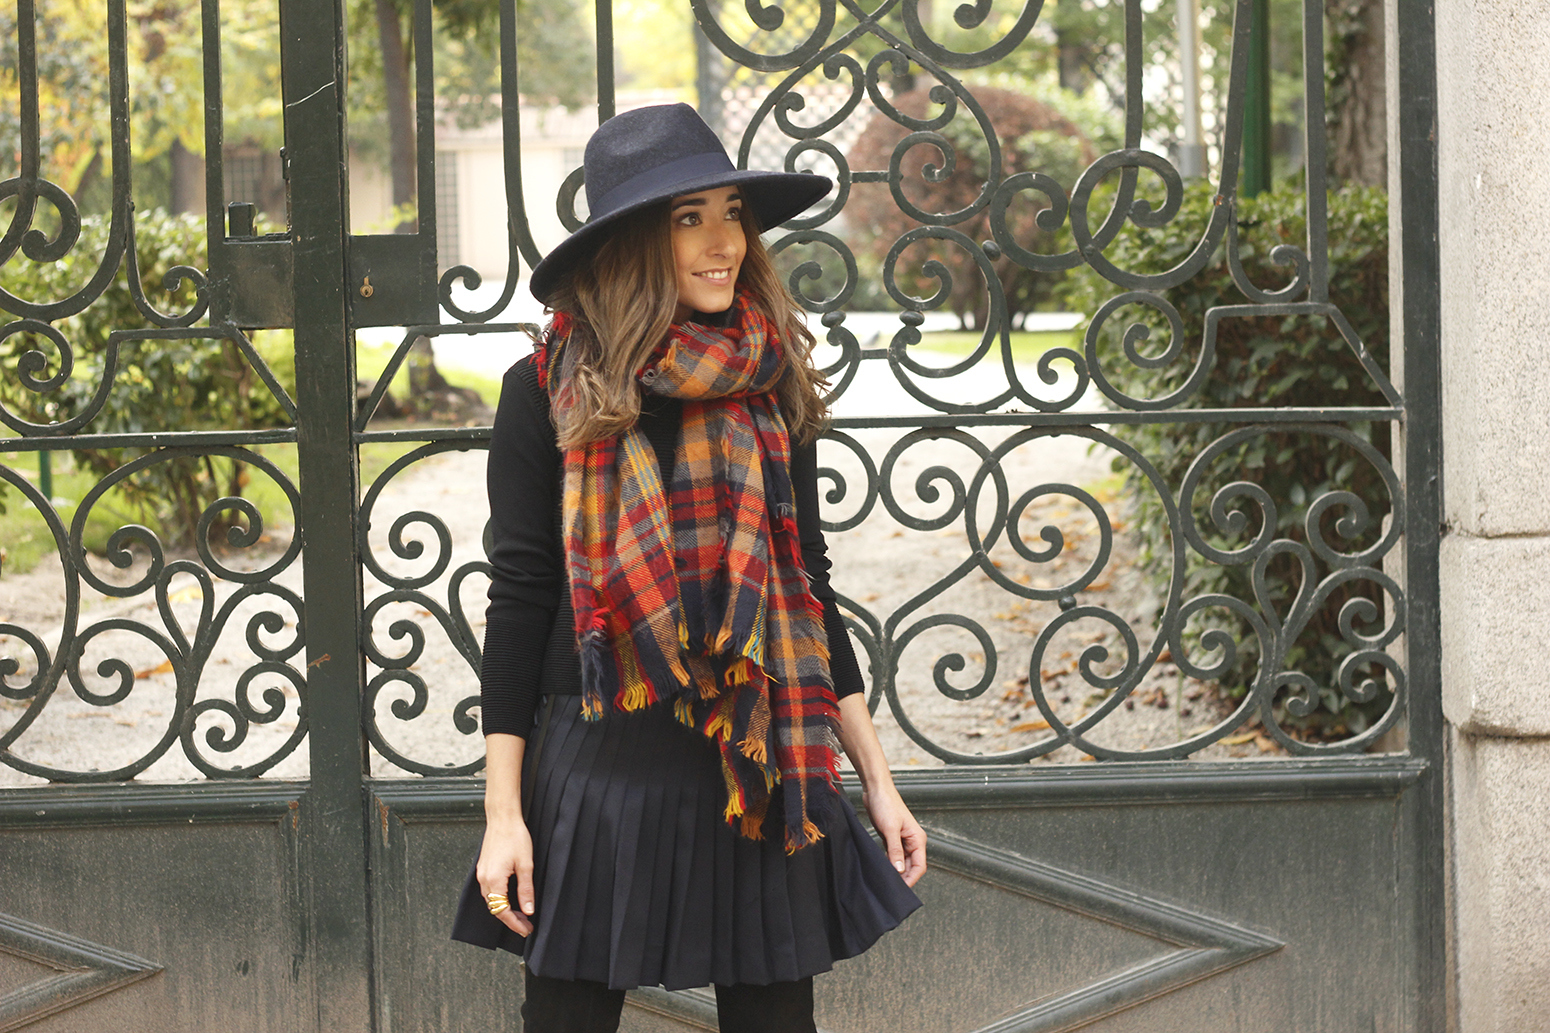 blue pleated skirt with over the knee boots blue hat black jersey outfit style 16